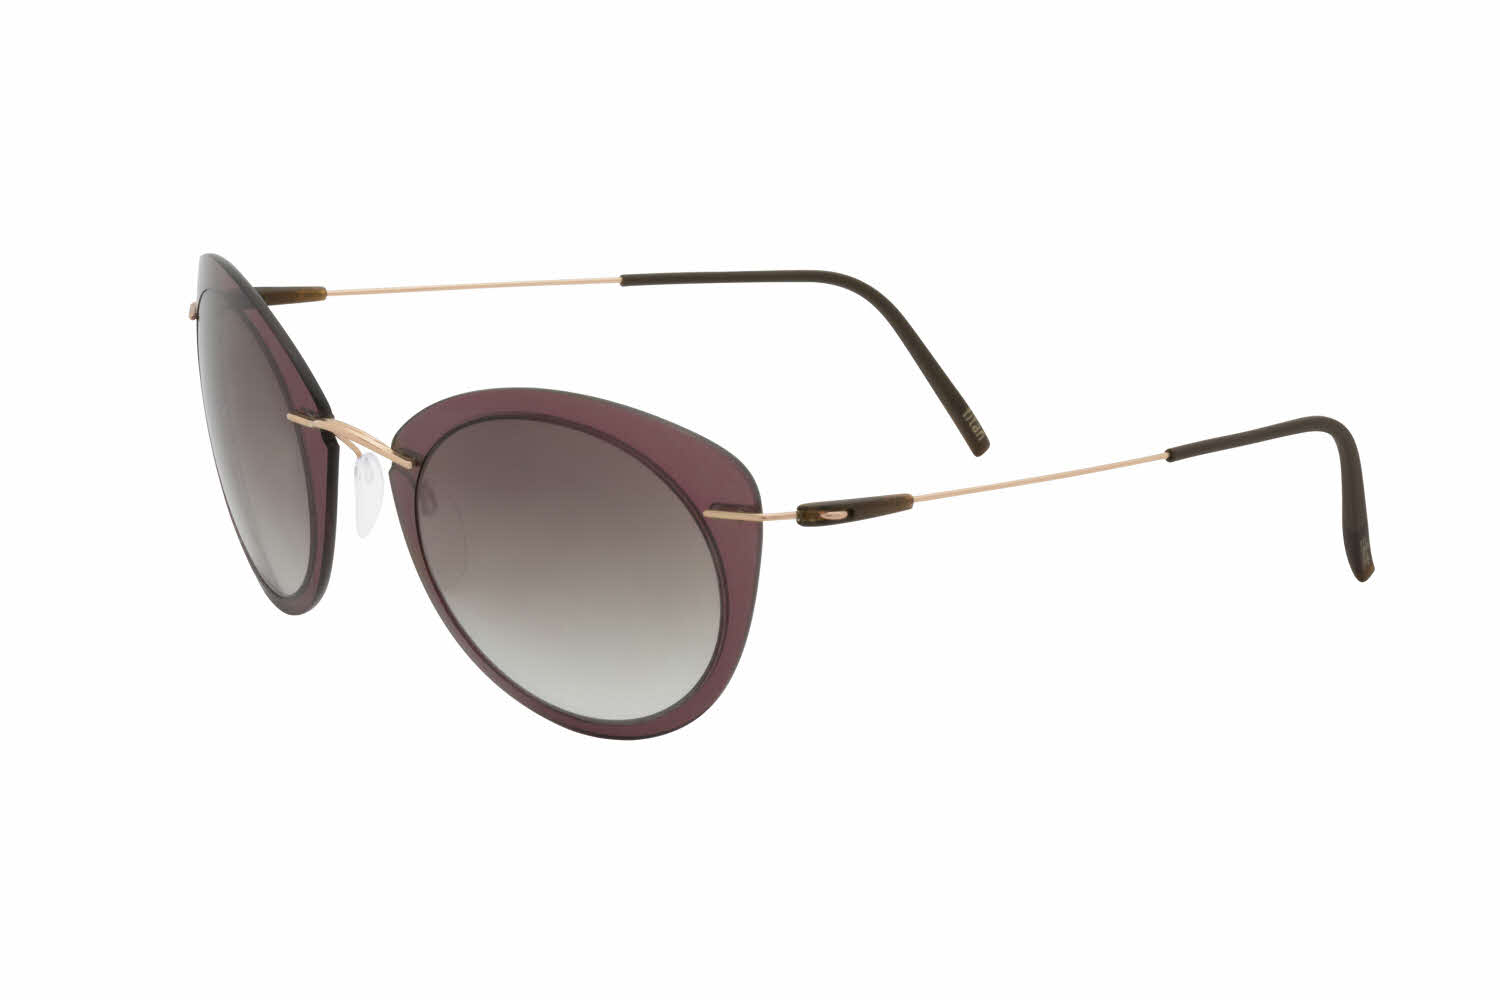 Silhouette Infinity Collection 8161 Sunglasses